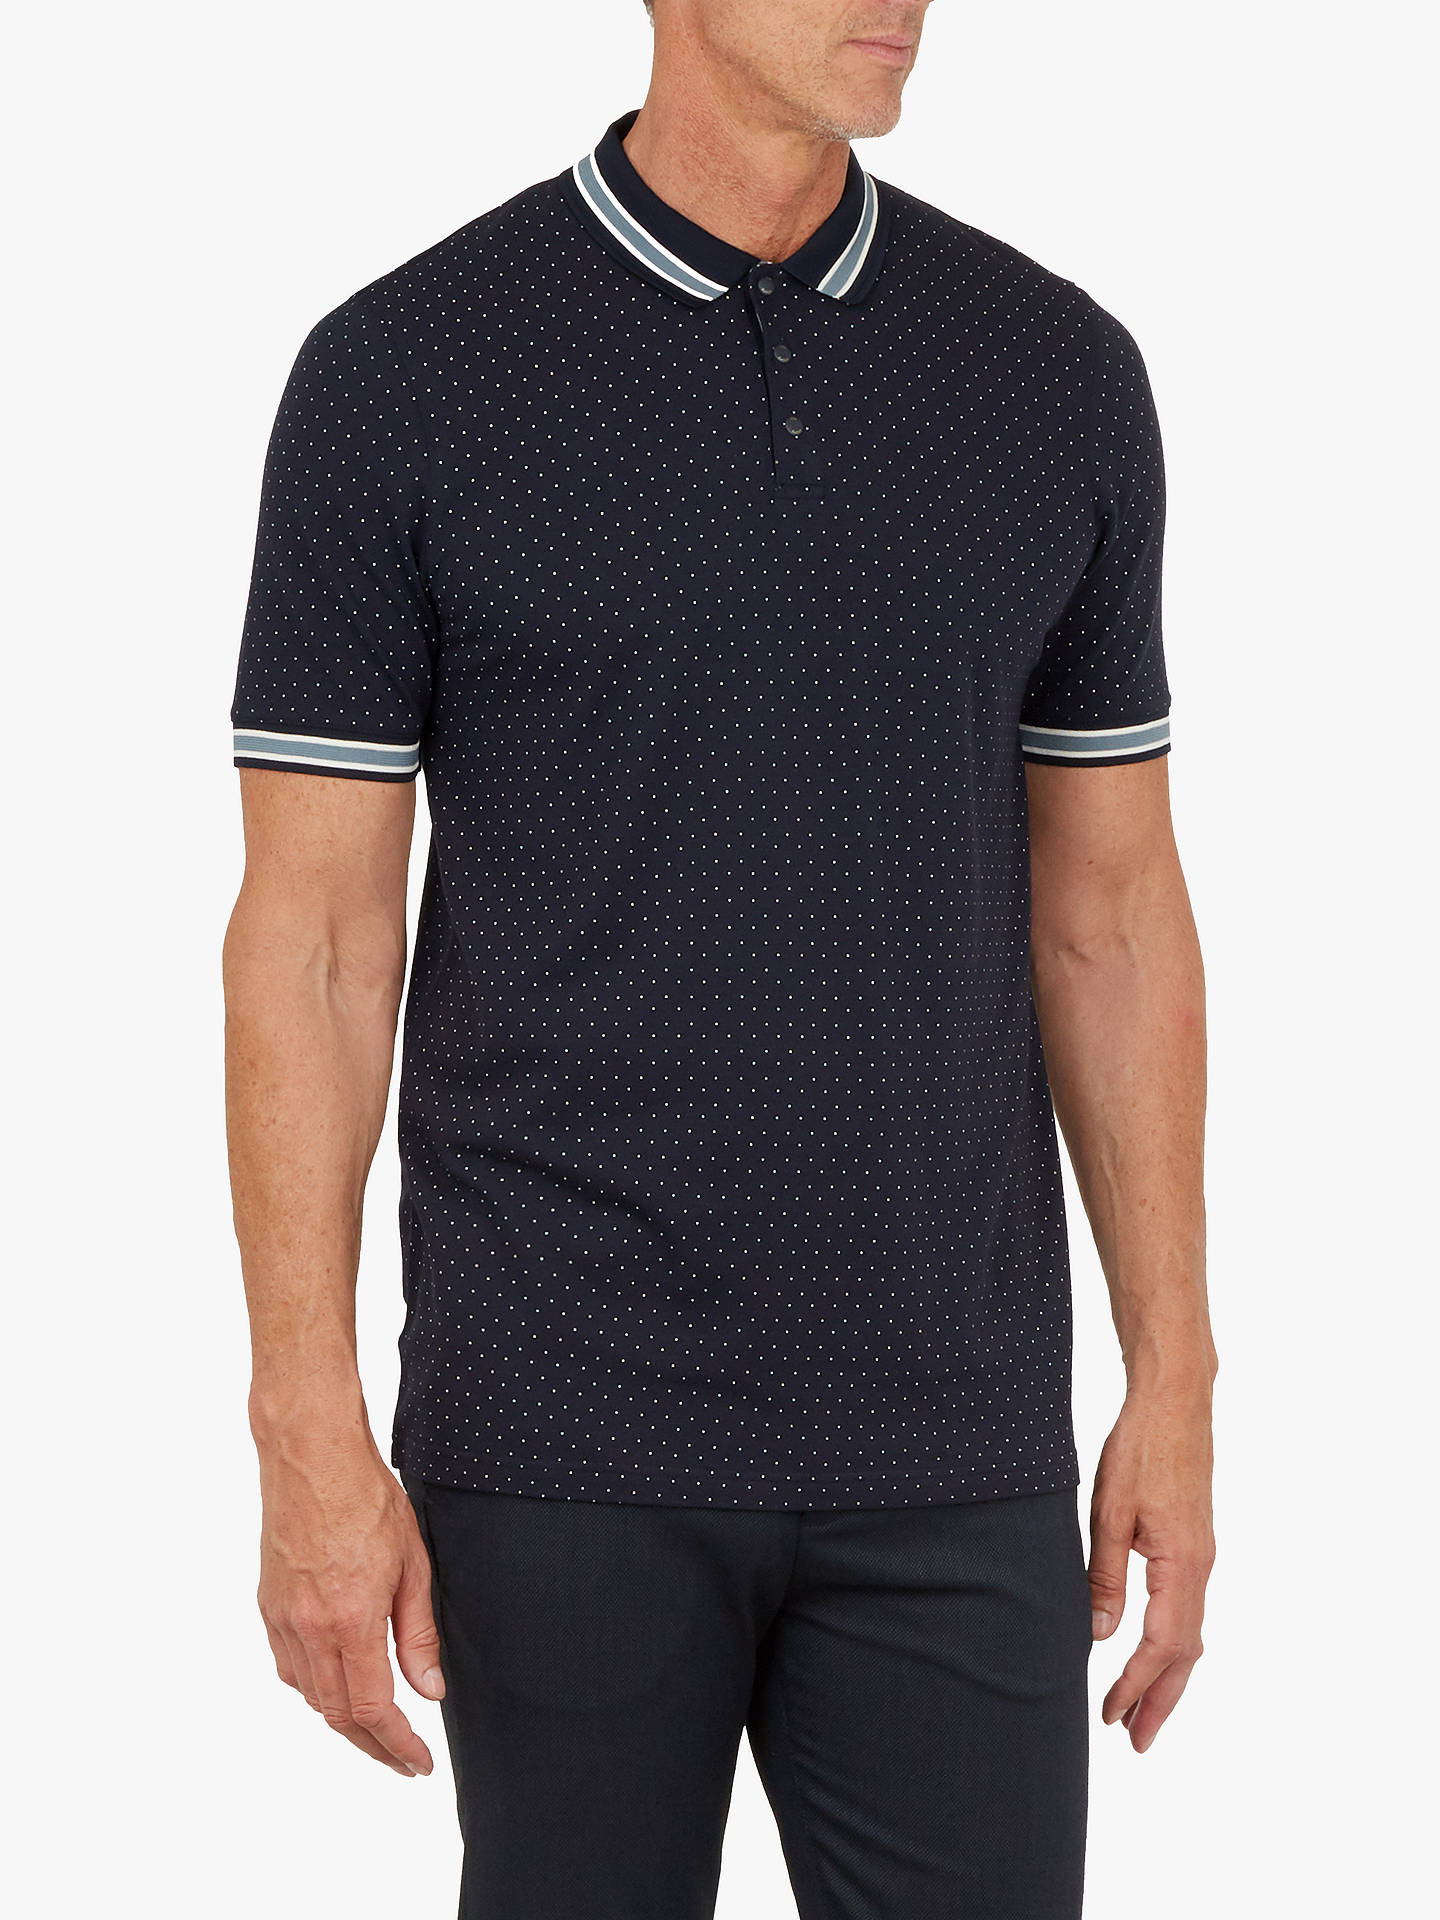 be4e0f76a Ted Baker T for Tall Museo Spot Print Polo Shirt at John Lewis ...